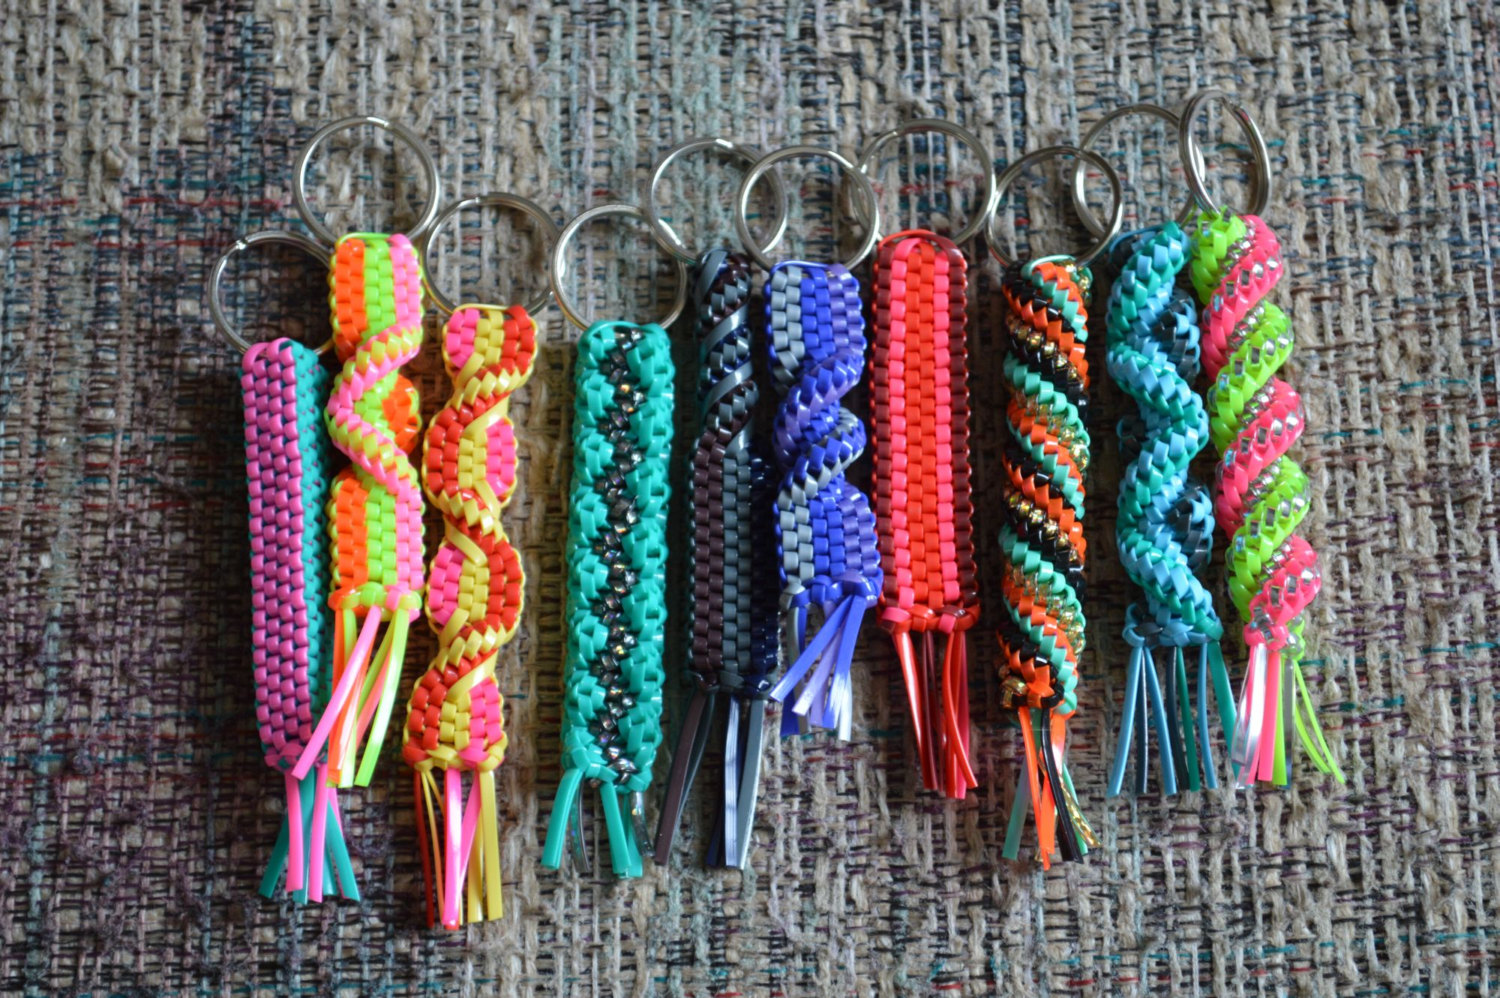 Lanyard Keychains | 65 Nostalgic Stocking Stuffers For